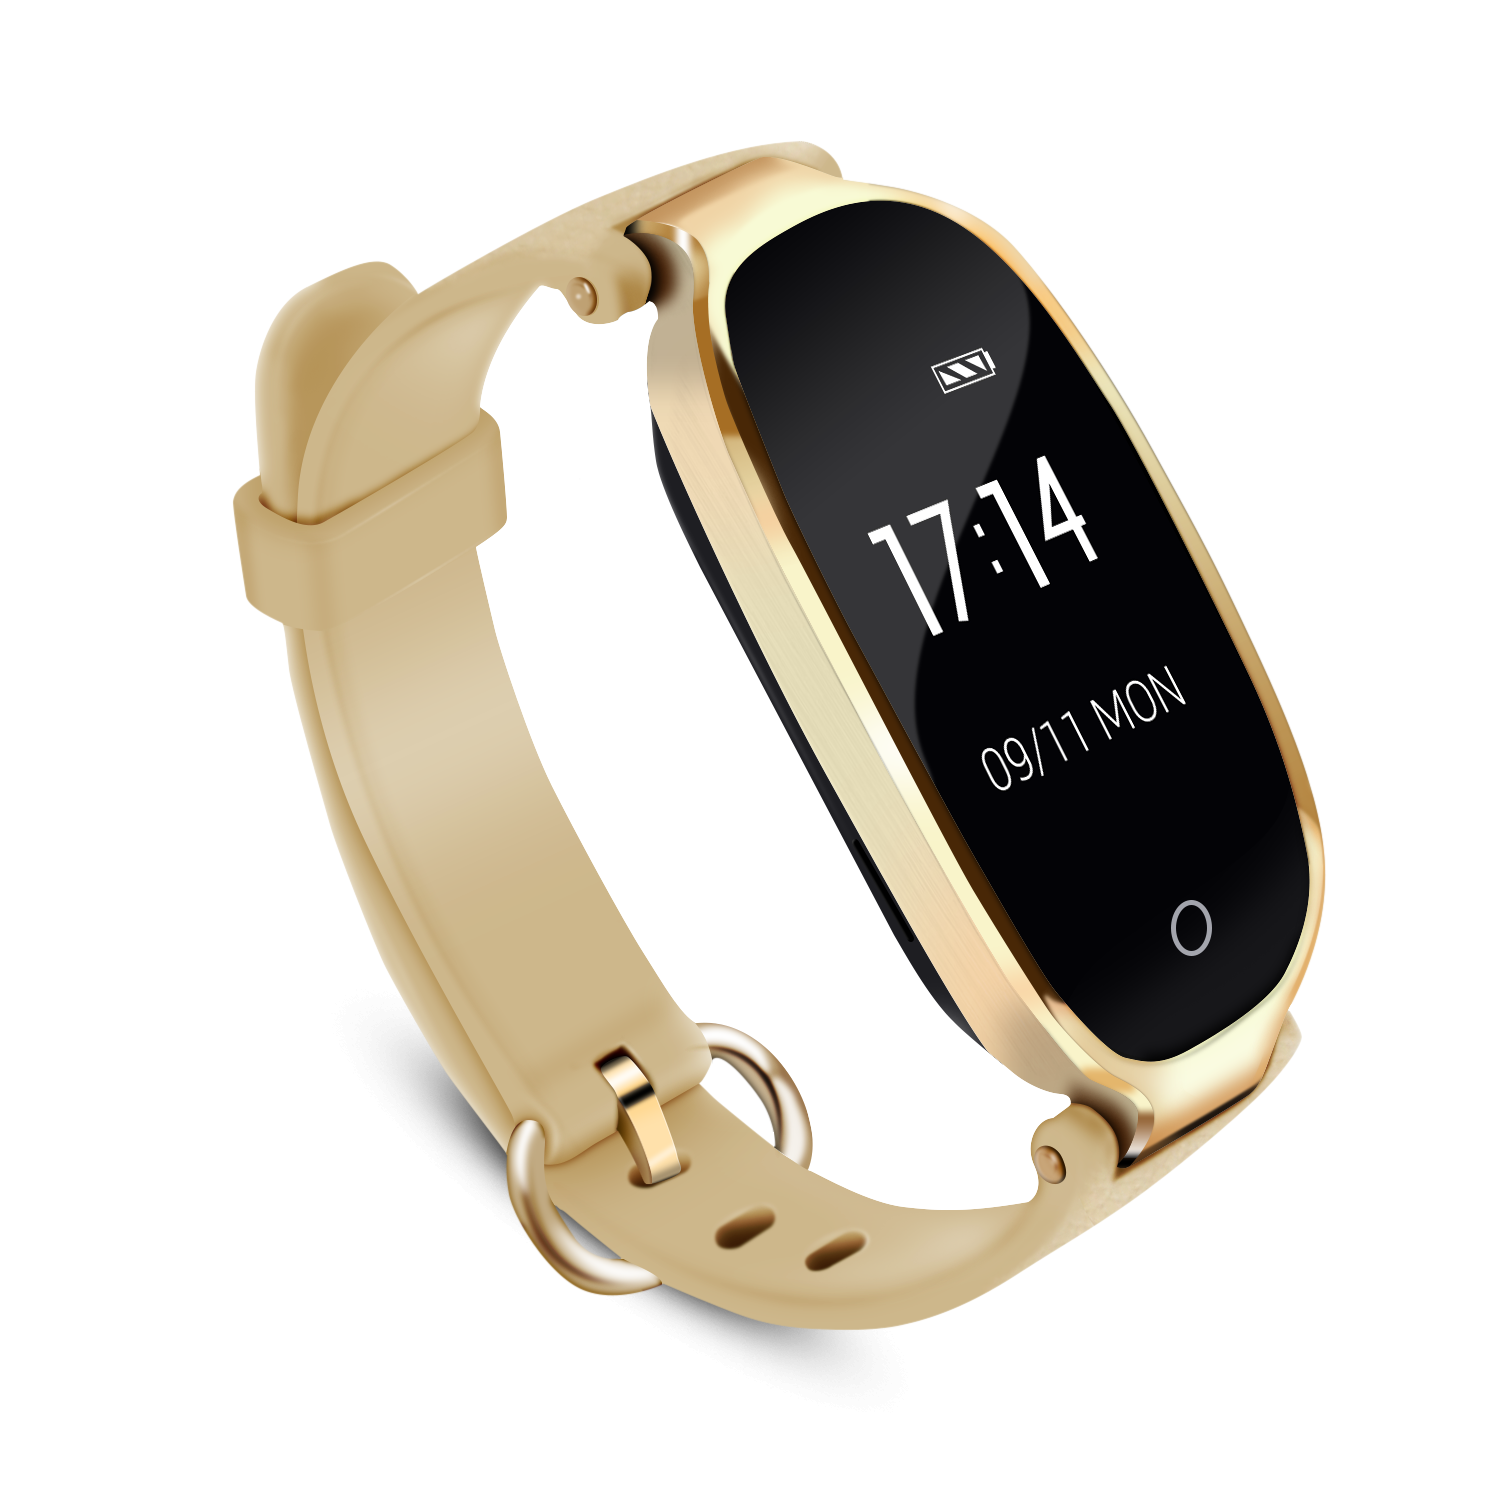 AGPTEK Lady Fitness Tracker, Woman Fashion Smartwatch Wristband Bluetooth 4.0 Touch Screen with Heart Rate / Sleep Monitor / Pedometer / Notifications for IOS Android Smartphones, Gold